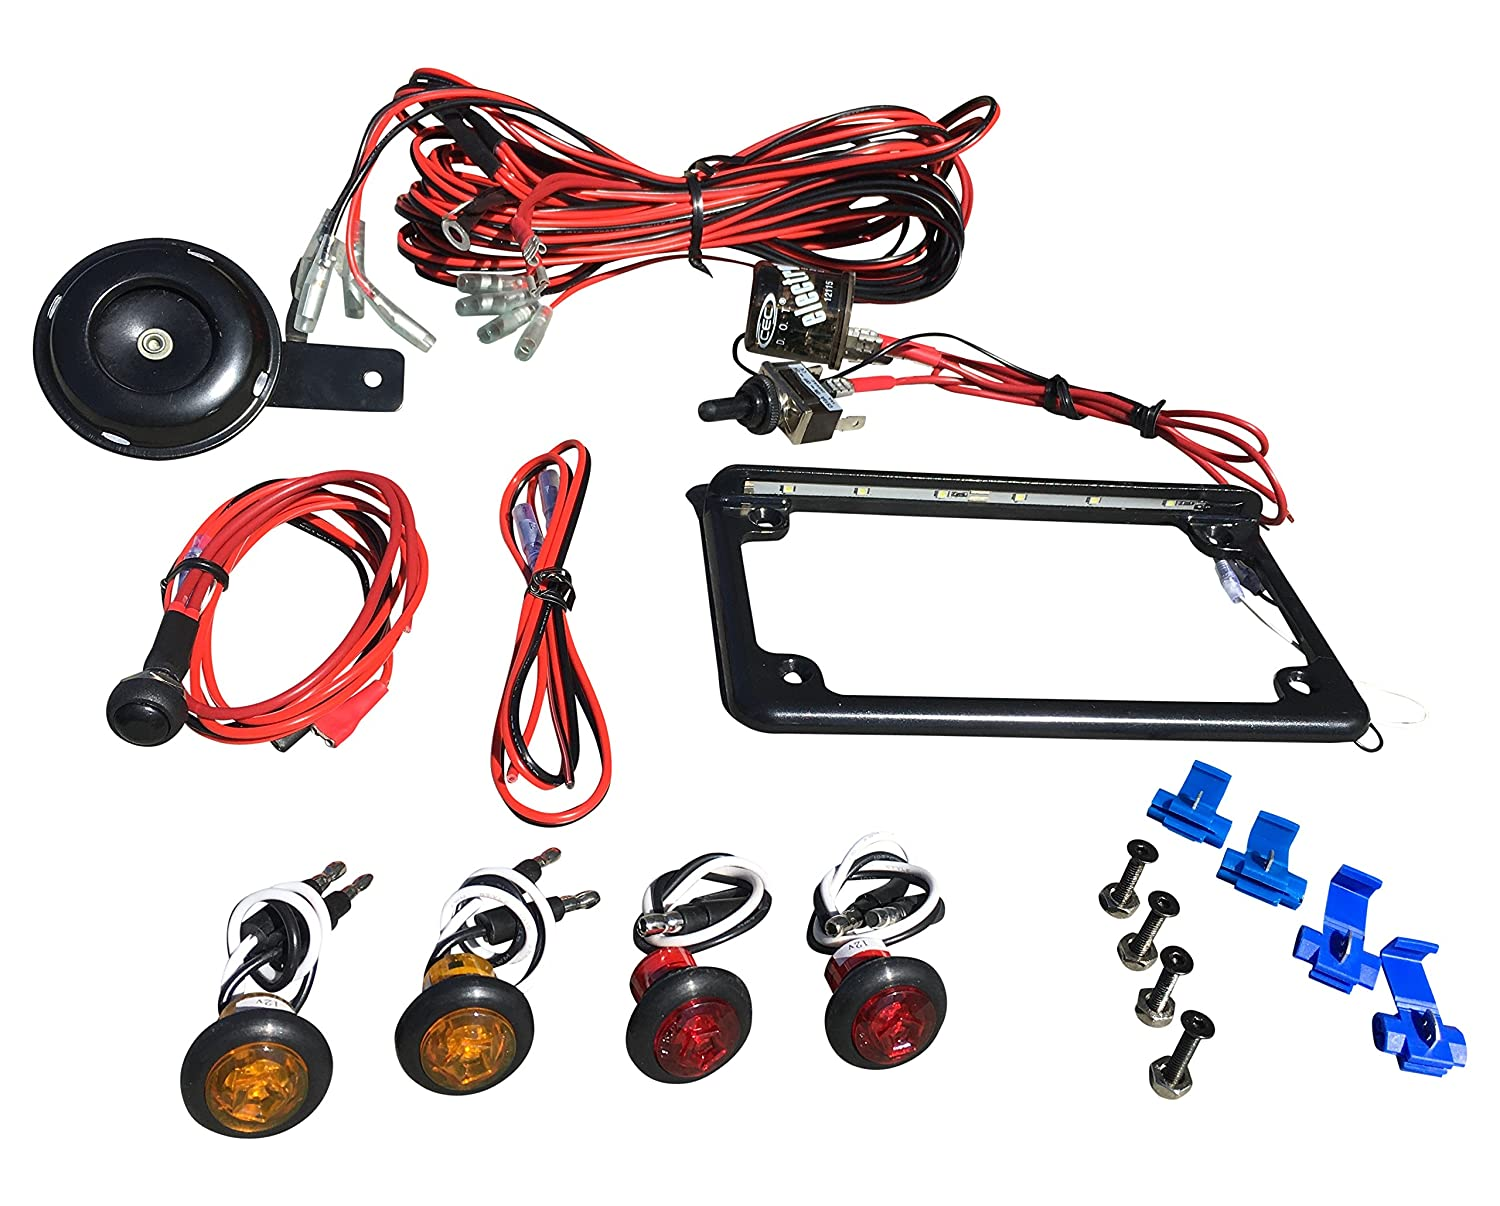 Amazon.com: WD Electronics Polaris RZR Street Legal Kit Blinker Kit Turn  Signals, Horn, licence plate: Automotive